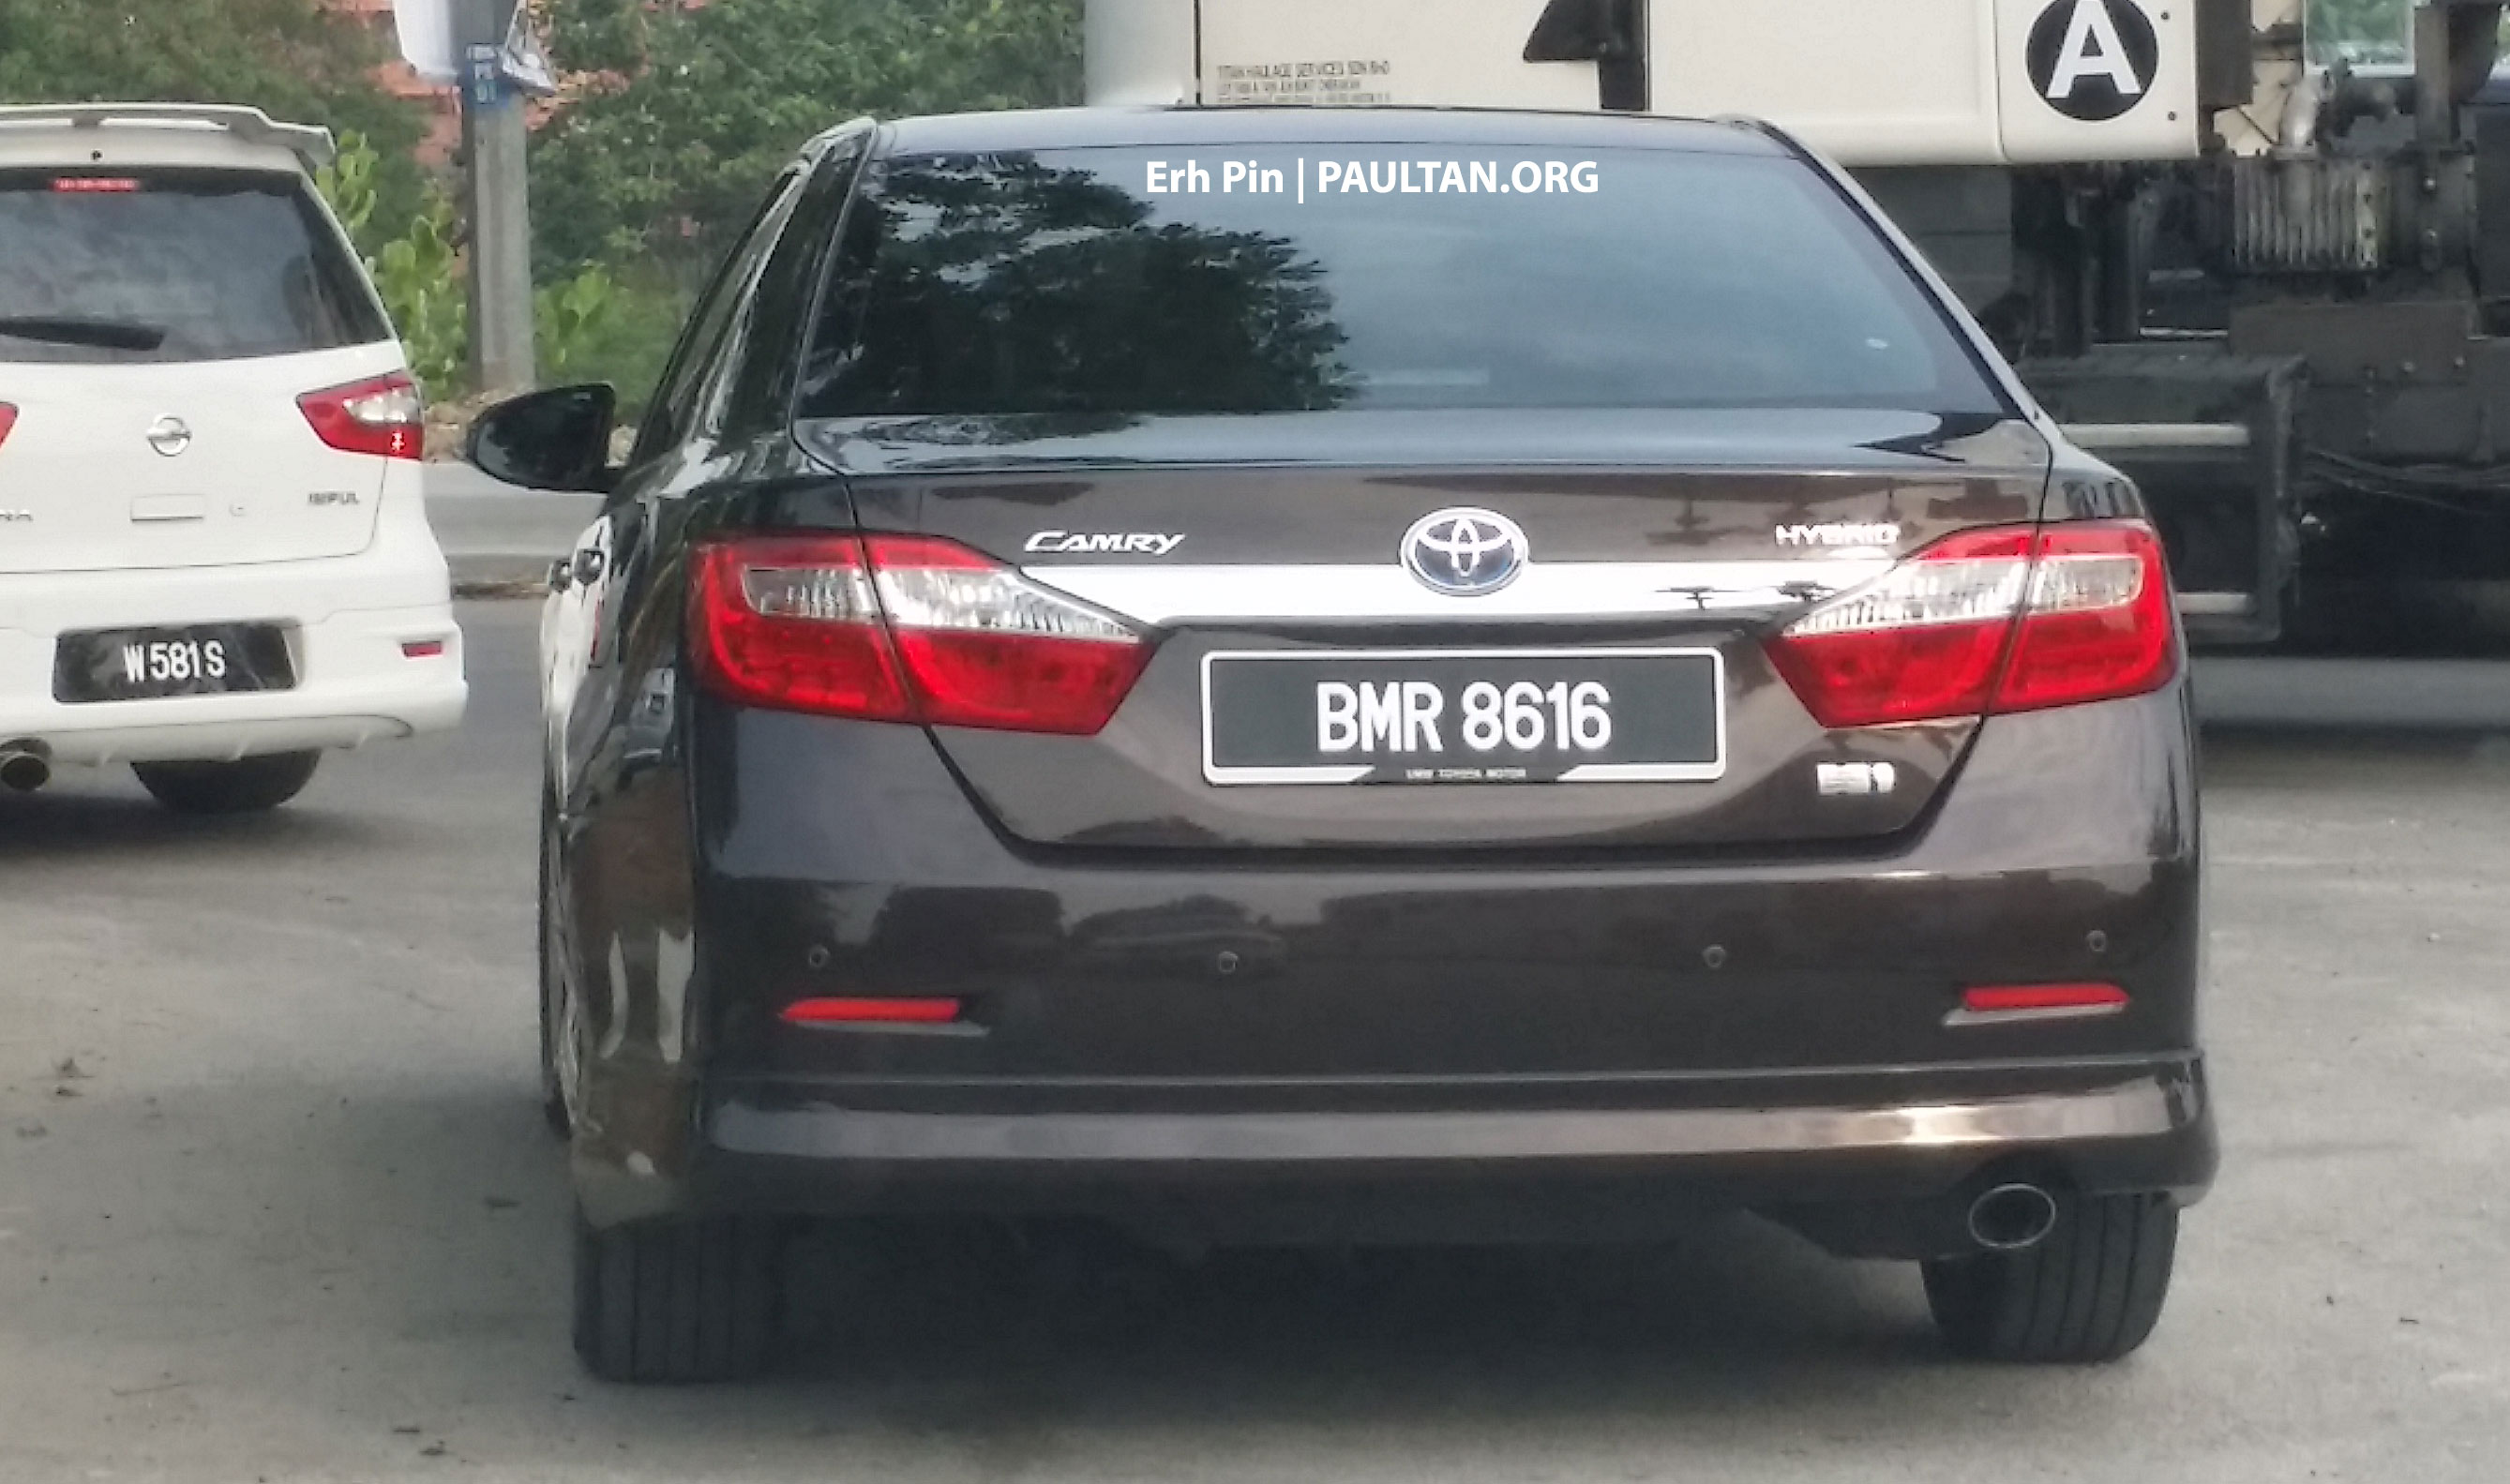 SPYSHOT Toyota Camry Hybrid spotted on the road Image 257549